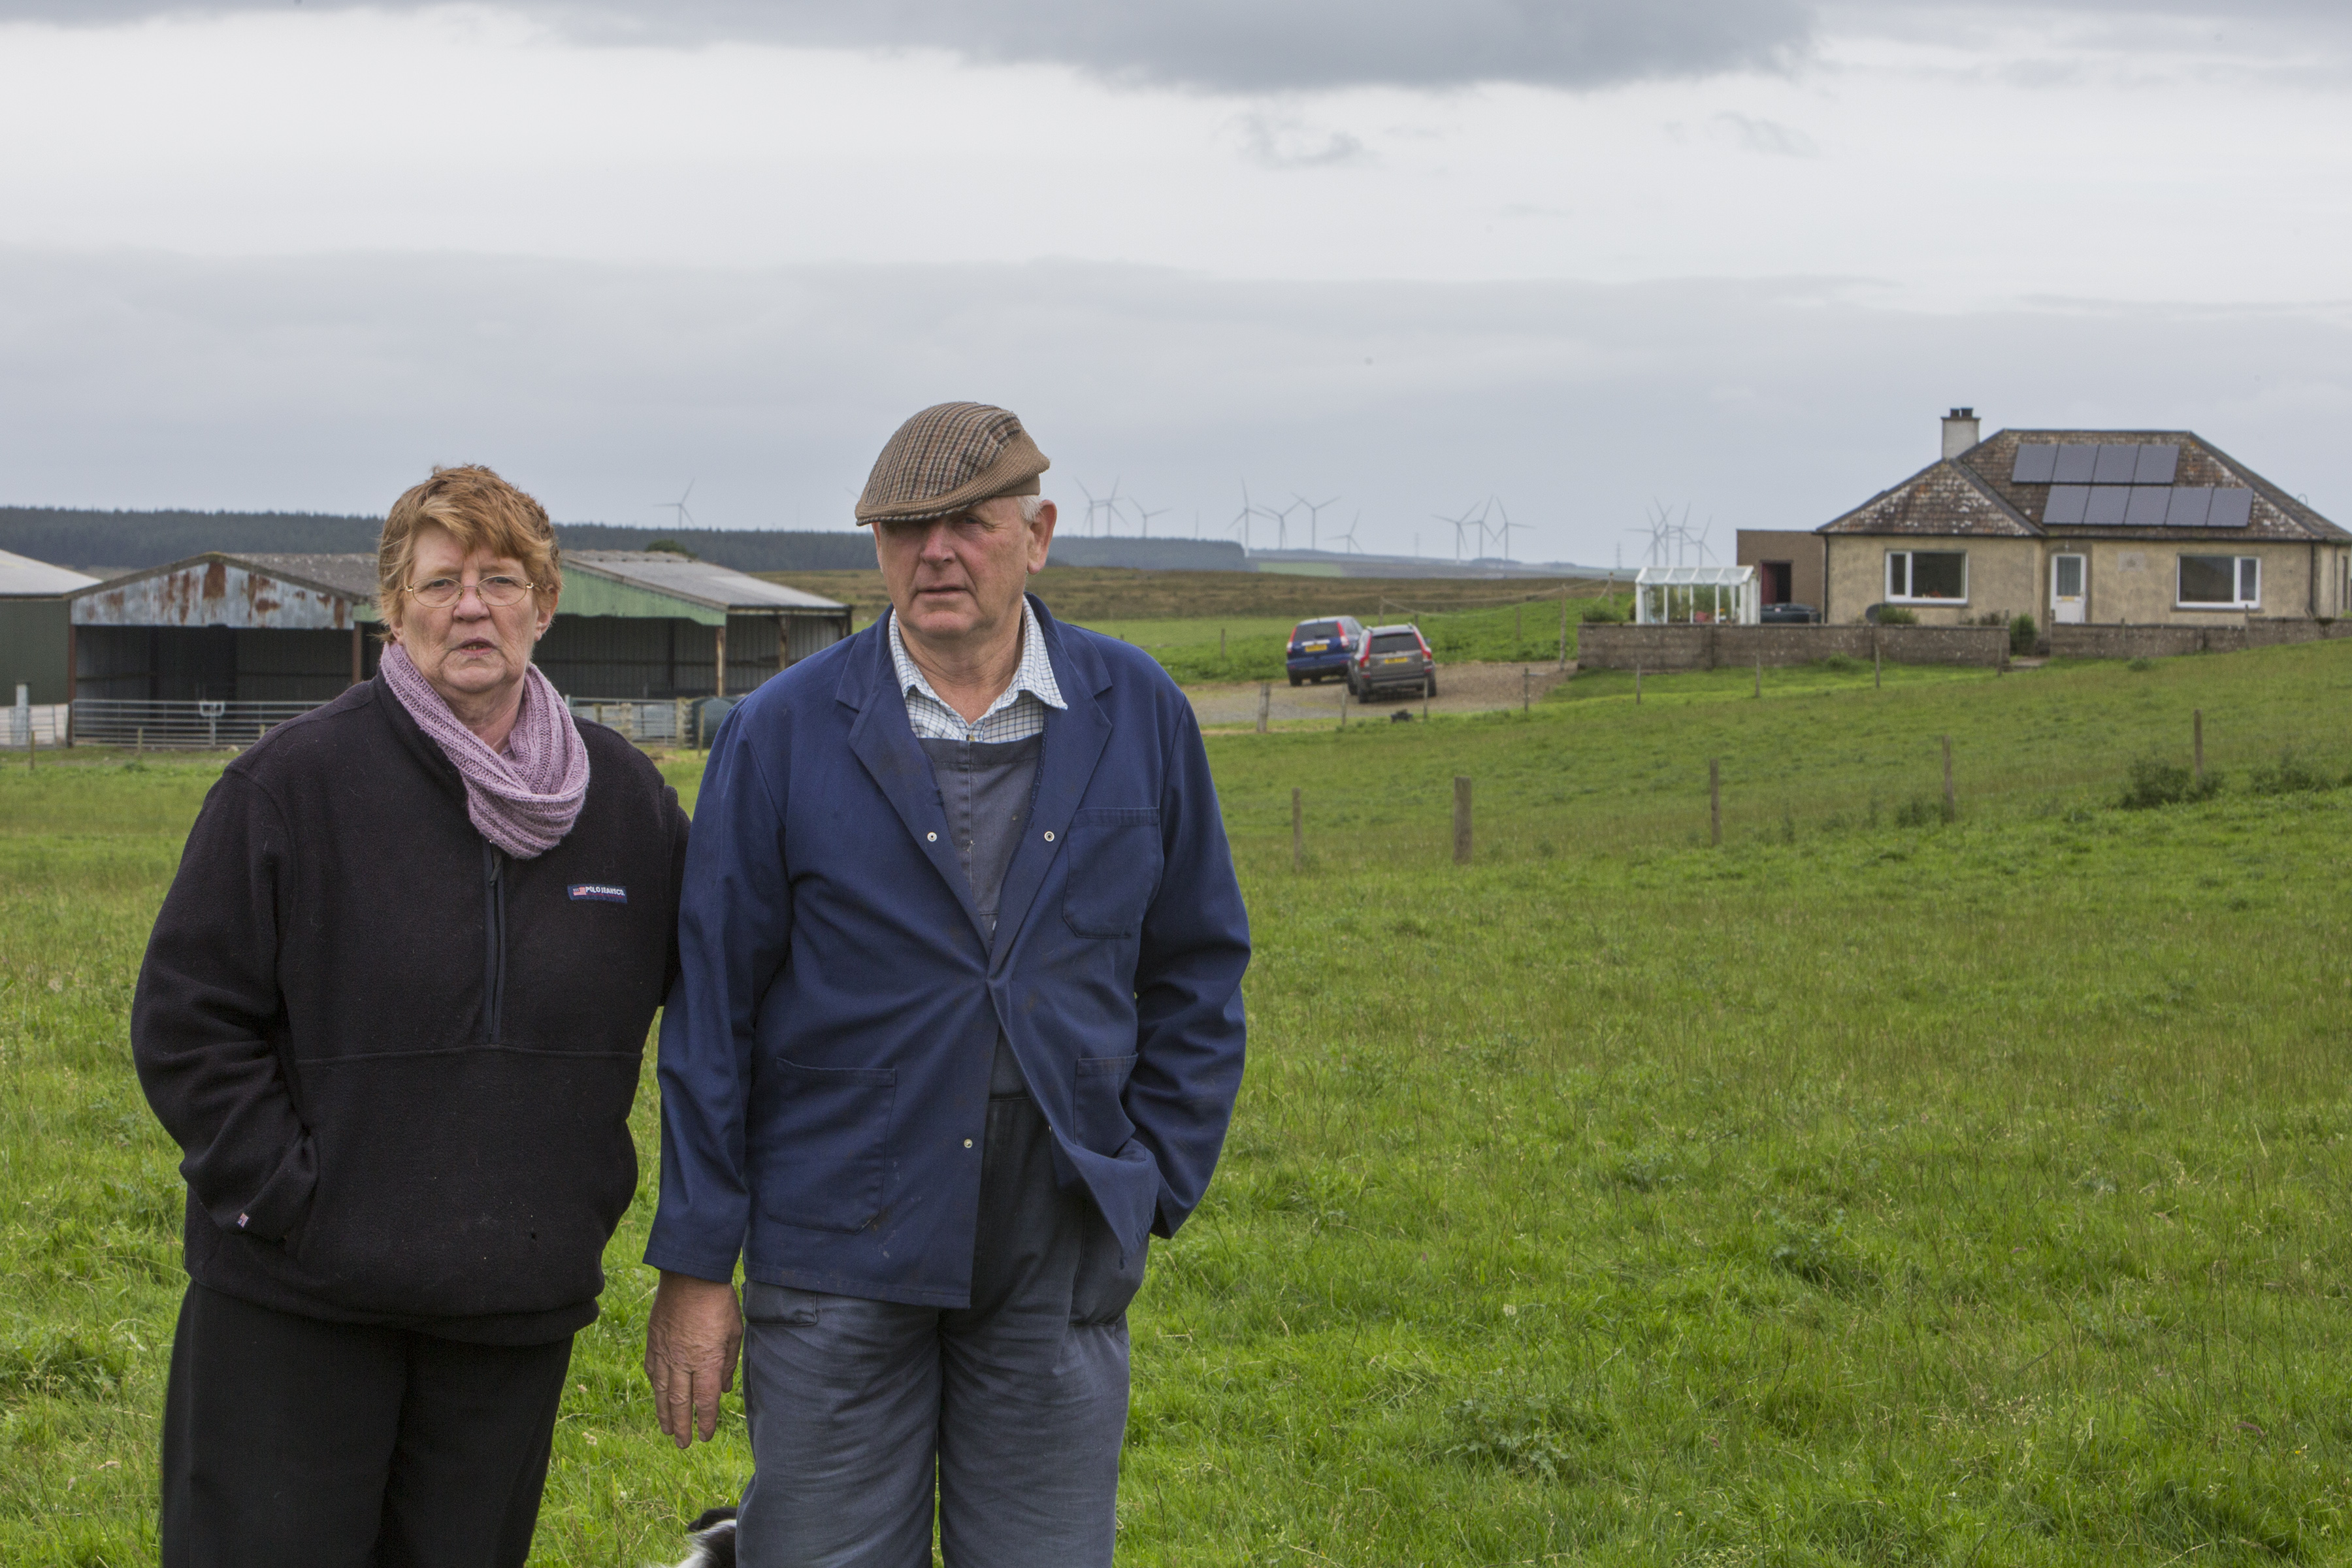 Hamish and Lesley Ritchie outside their home, which is sandwiched between the Ballie and Causewaymire wind farms.